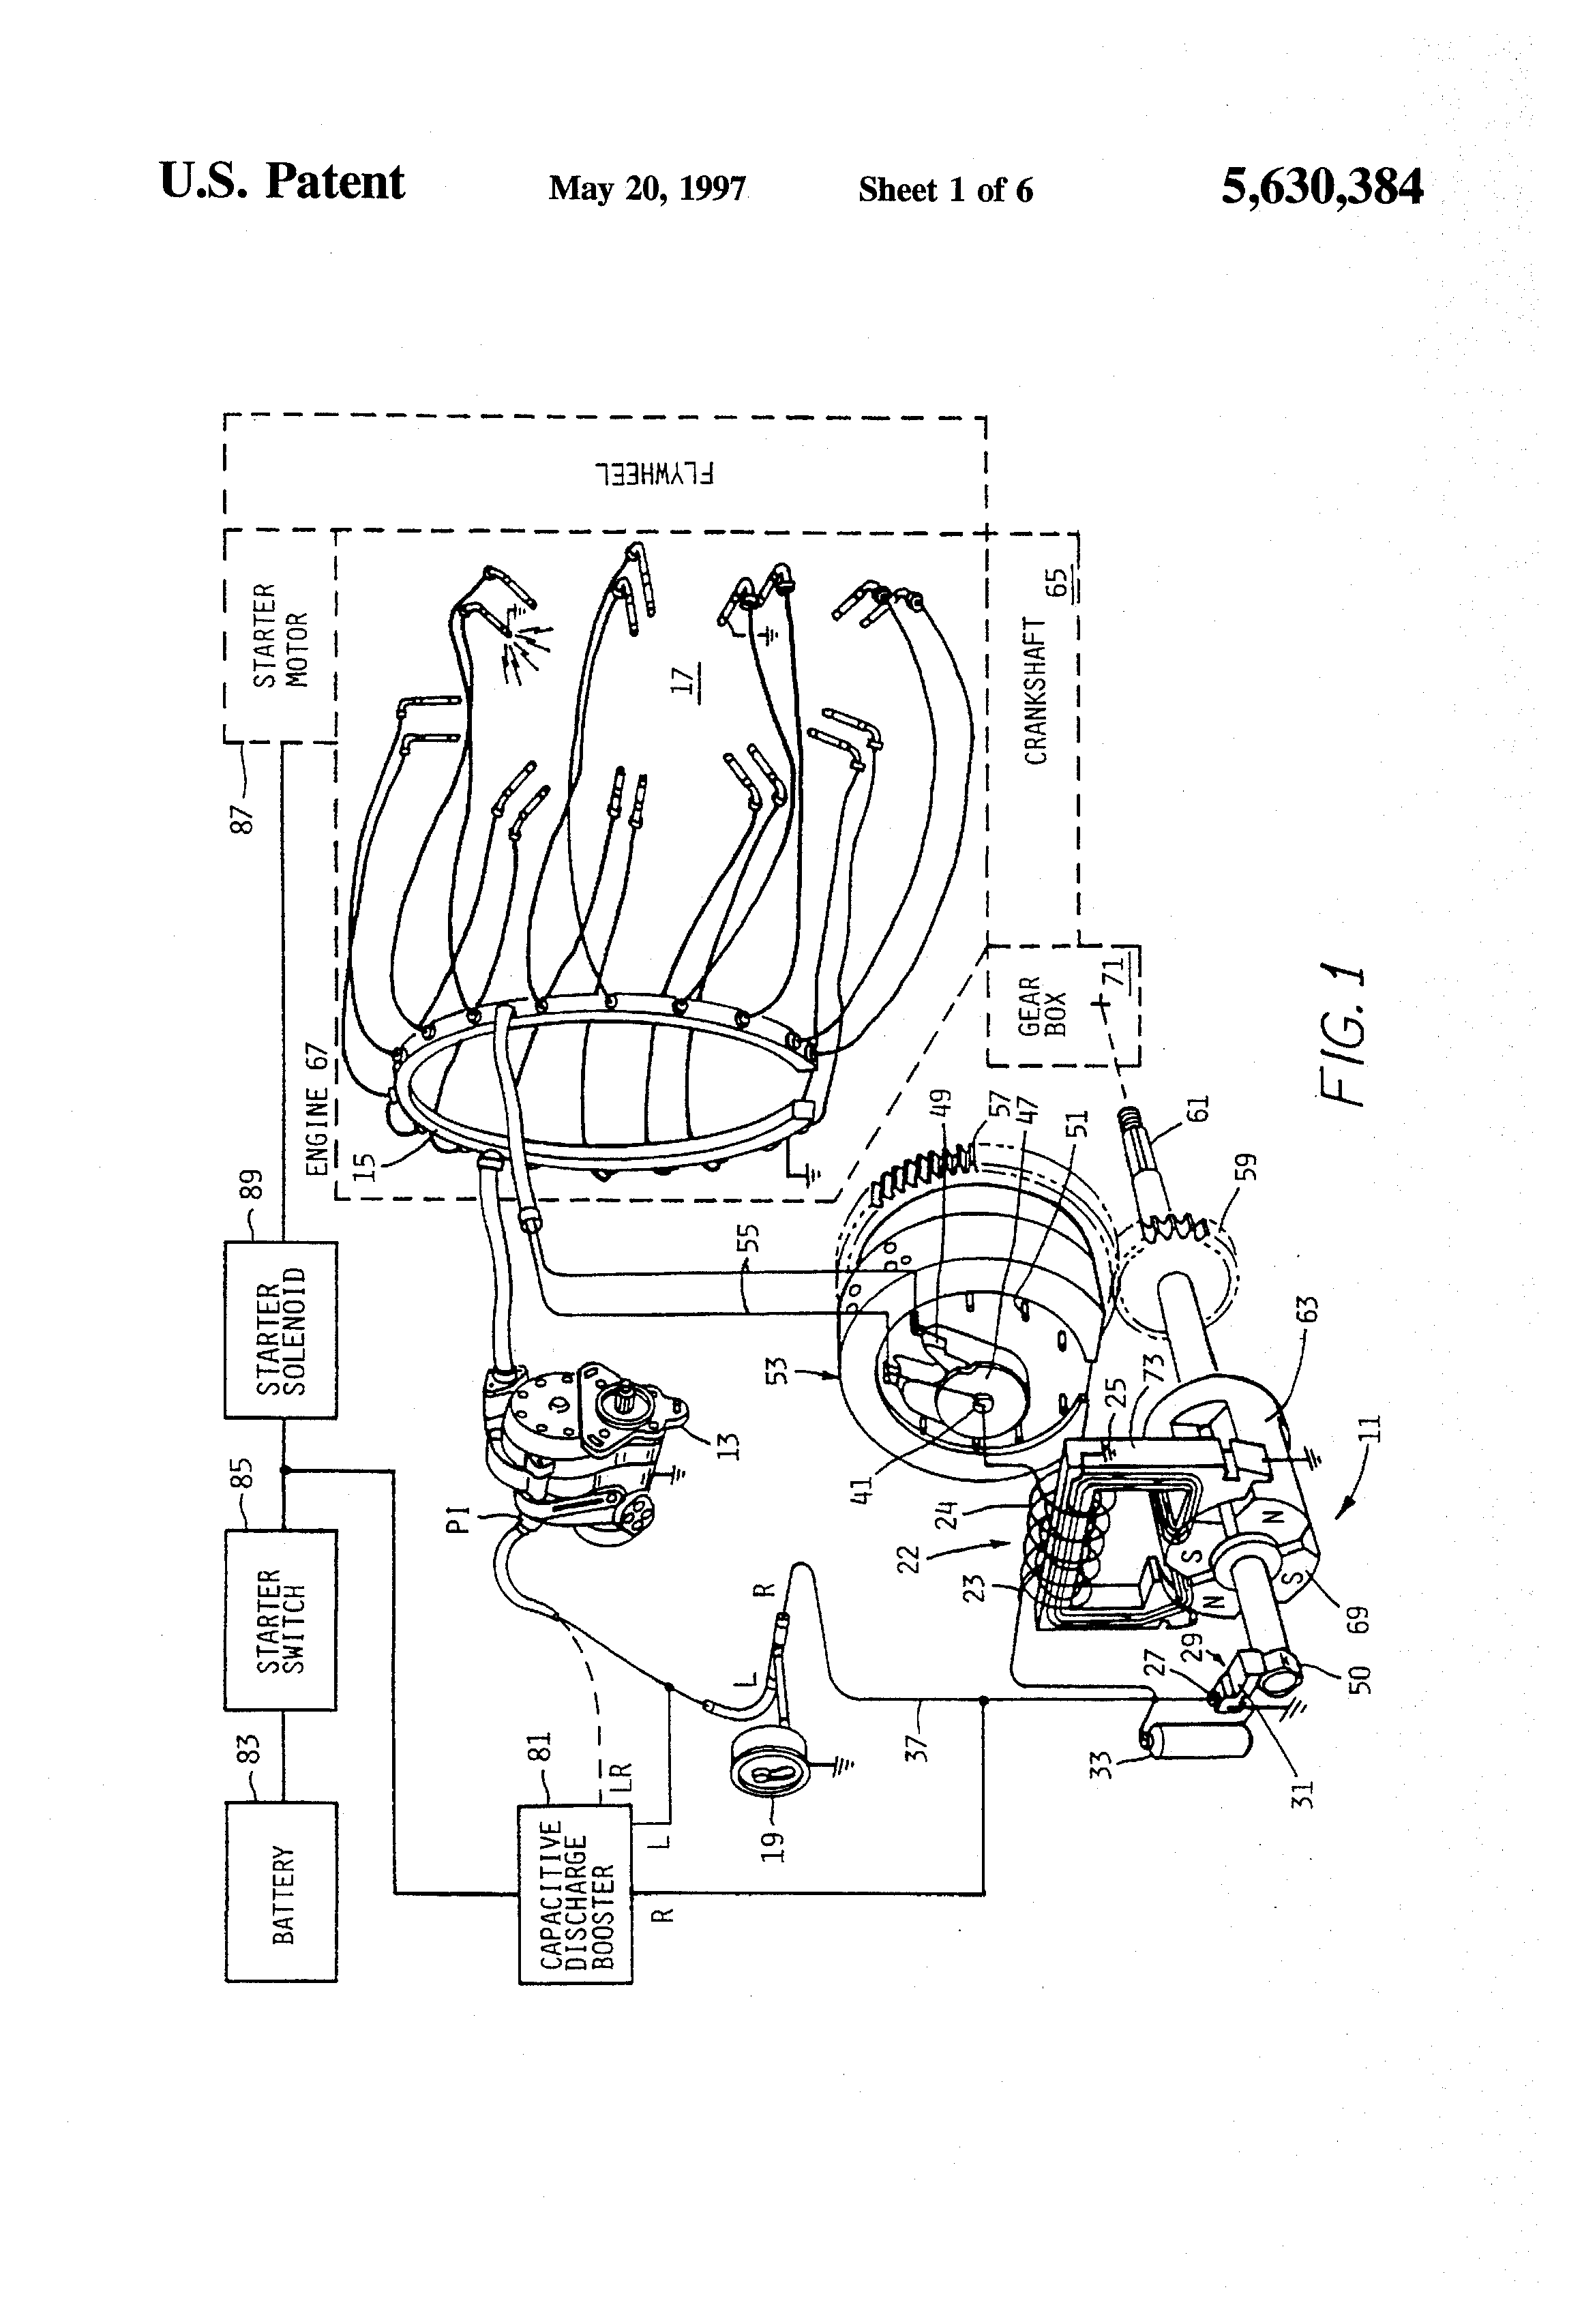 US5630384 1 patent us5630384 magneto based ignition system for reciprocating Wico C Magneto Diagram at gsmx.co